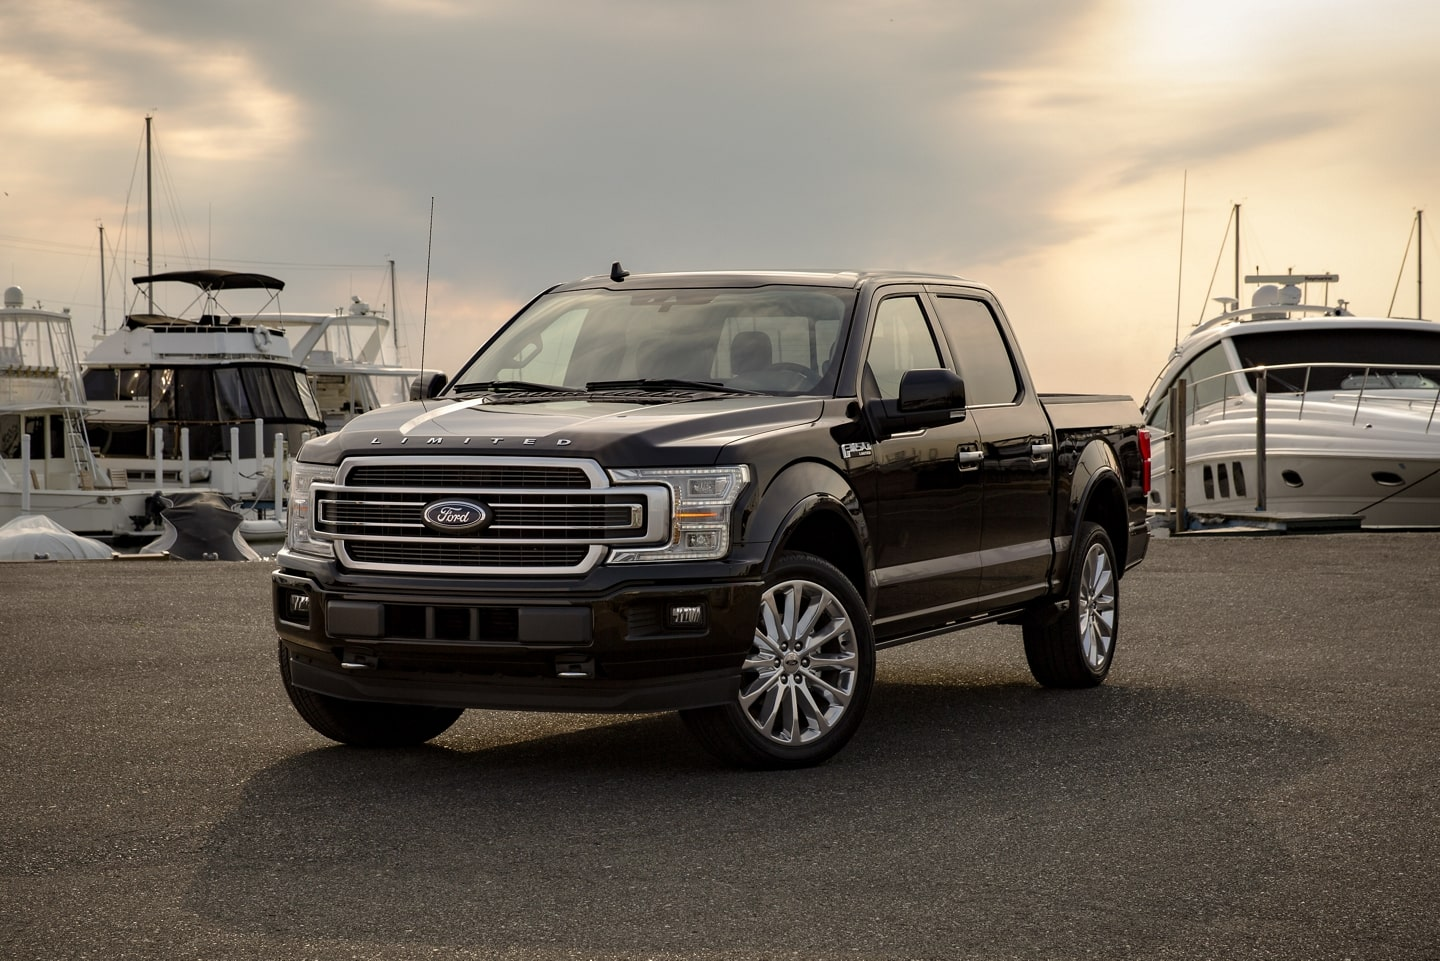 2020 Ford F-150 Limited in Agate Black